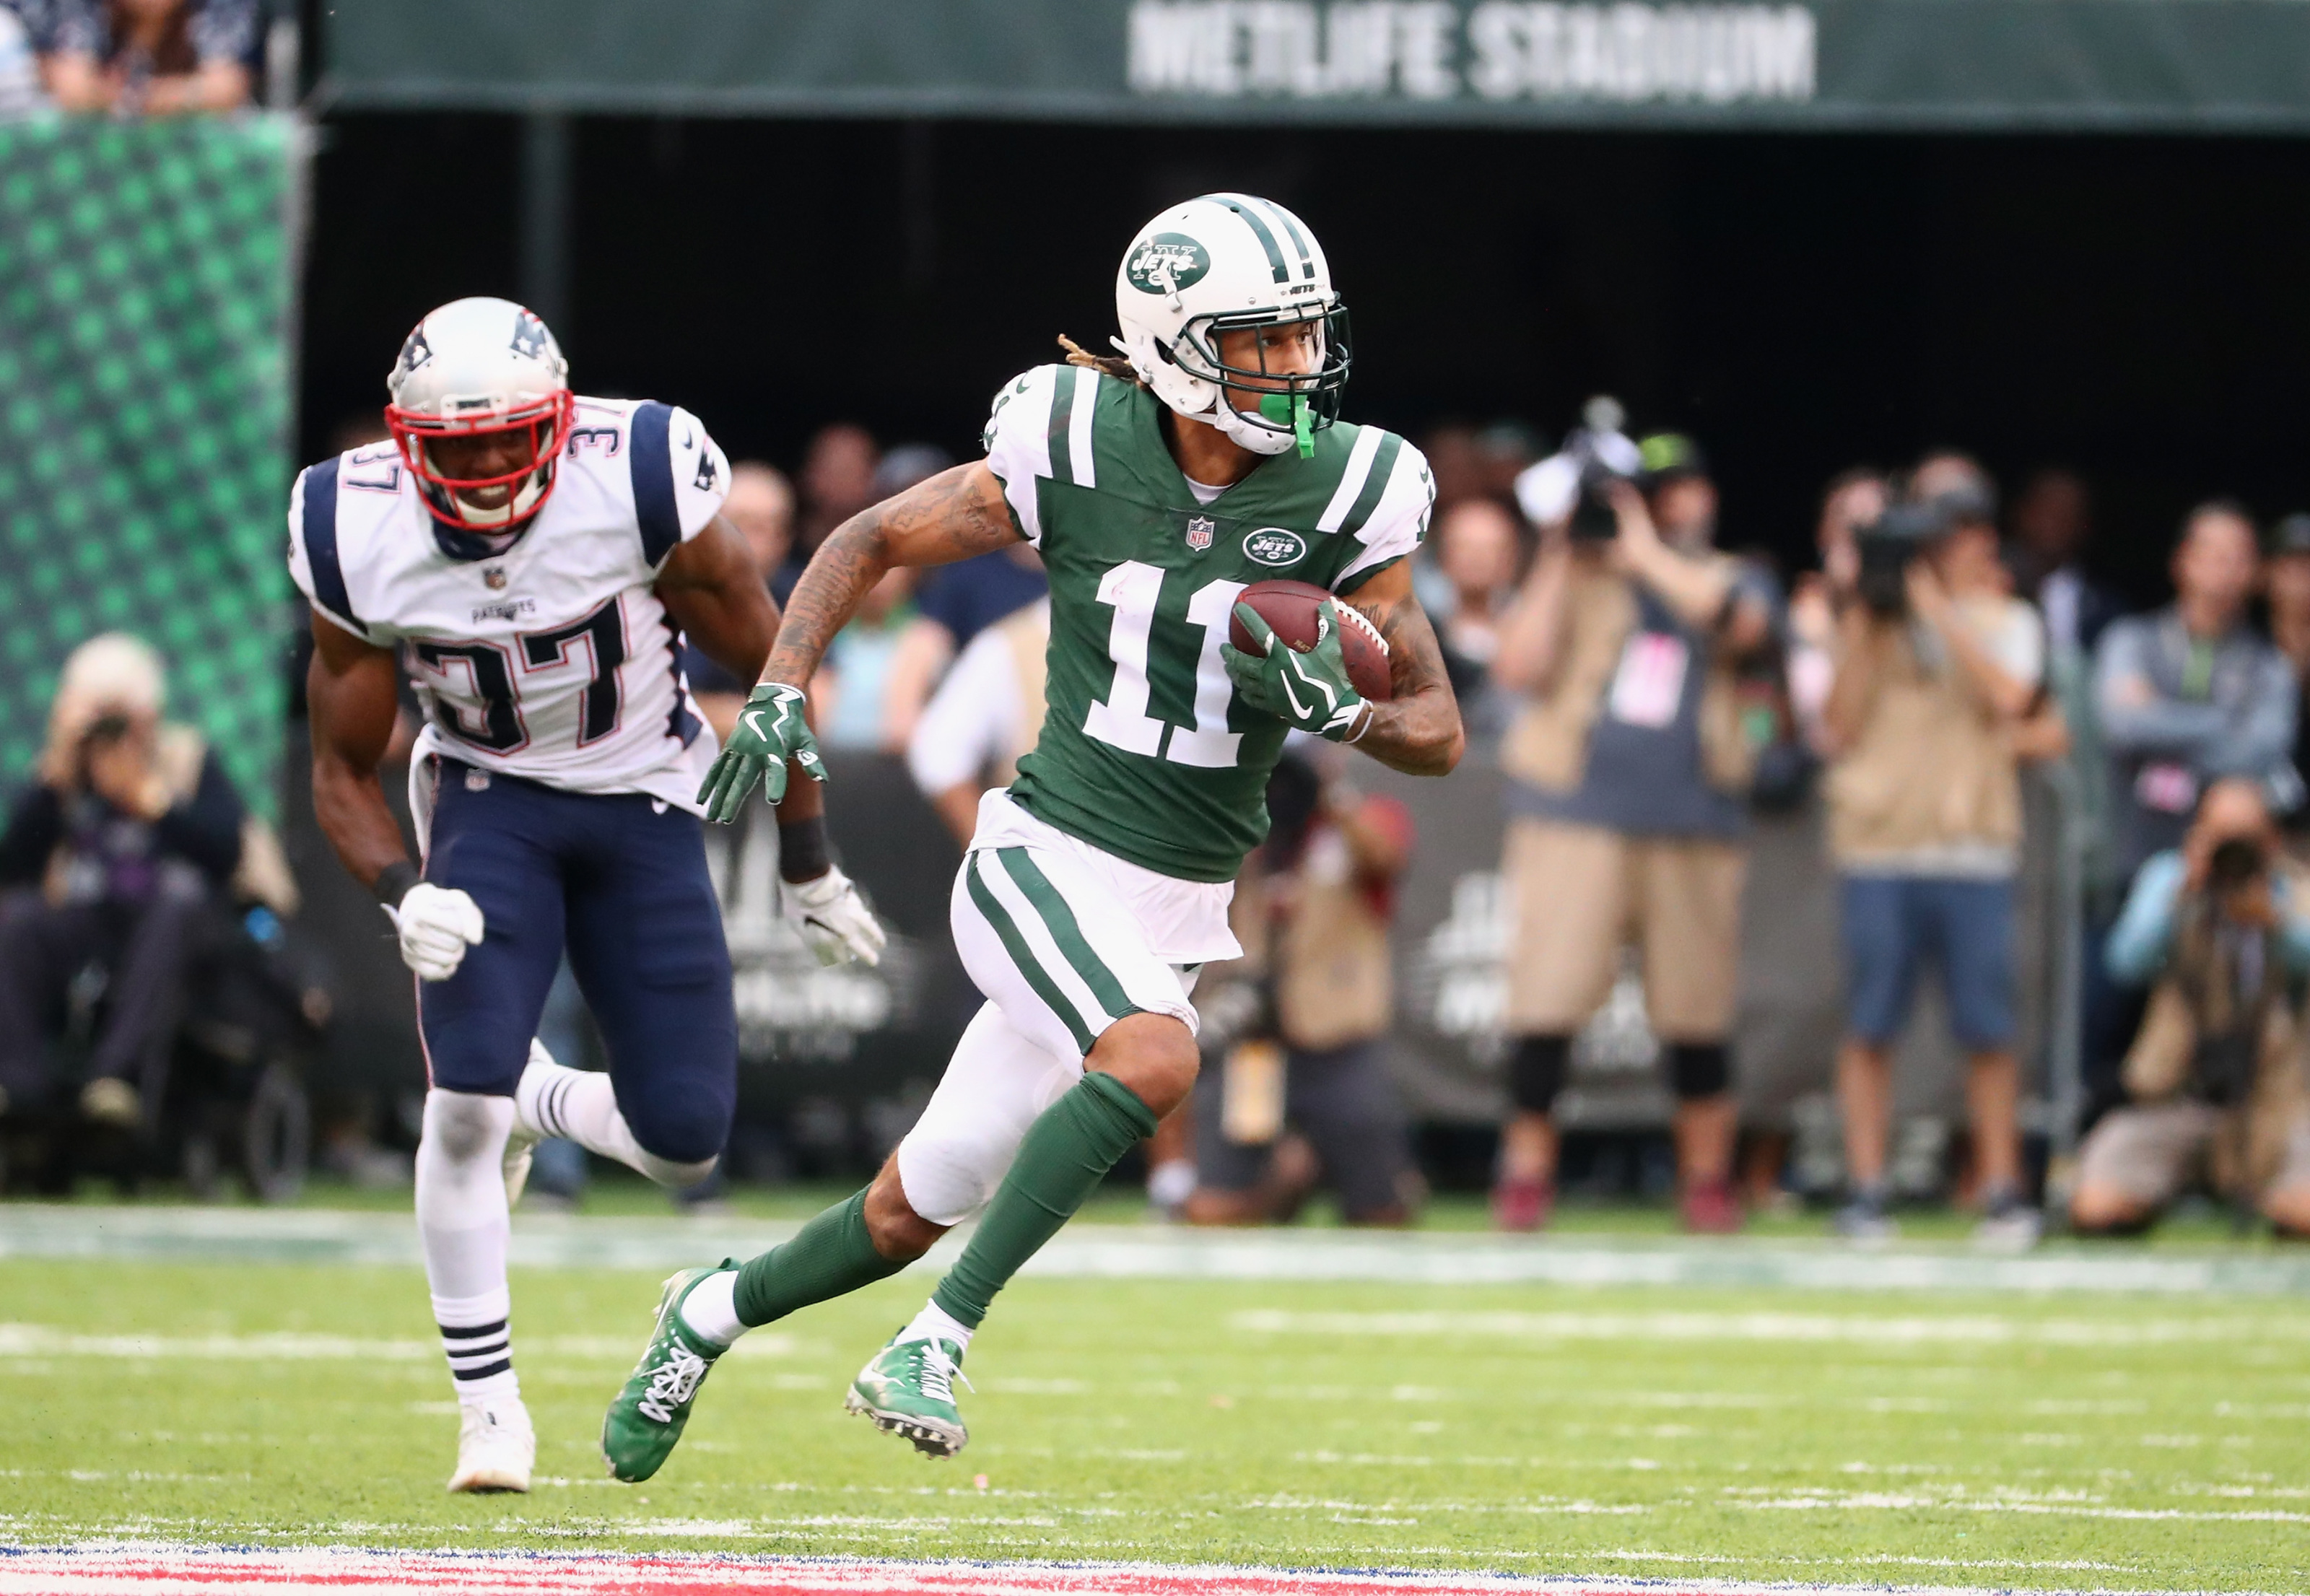 New York Jets 2018 Training Camp Profile: Robby Anderson